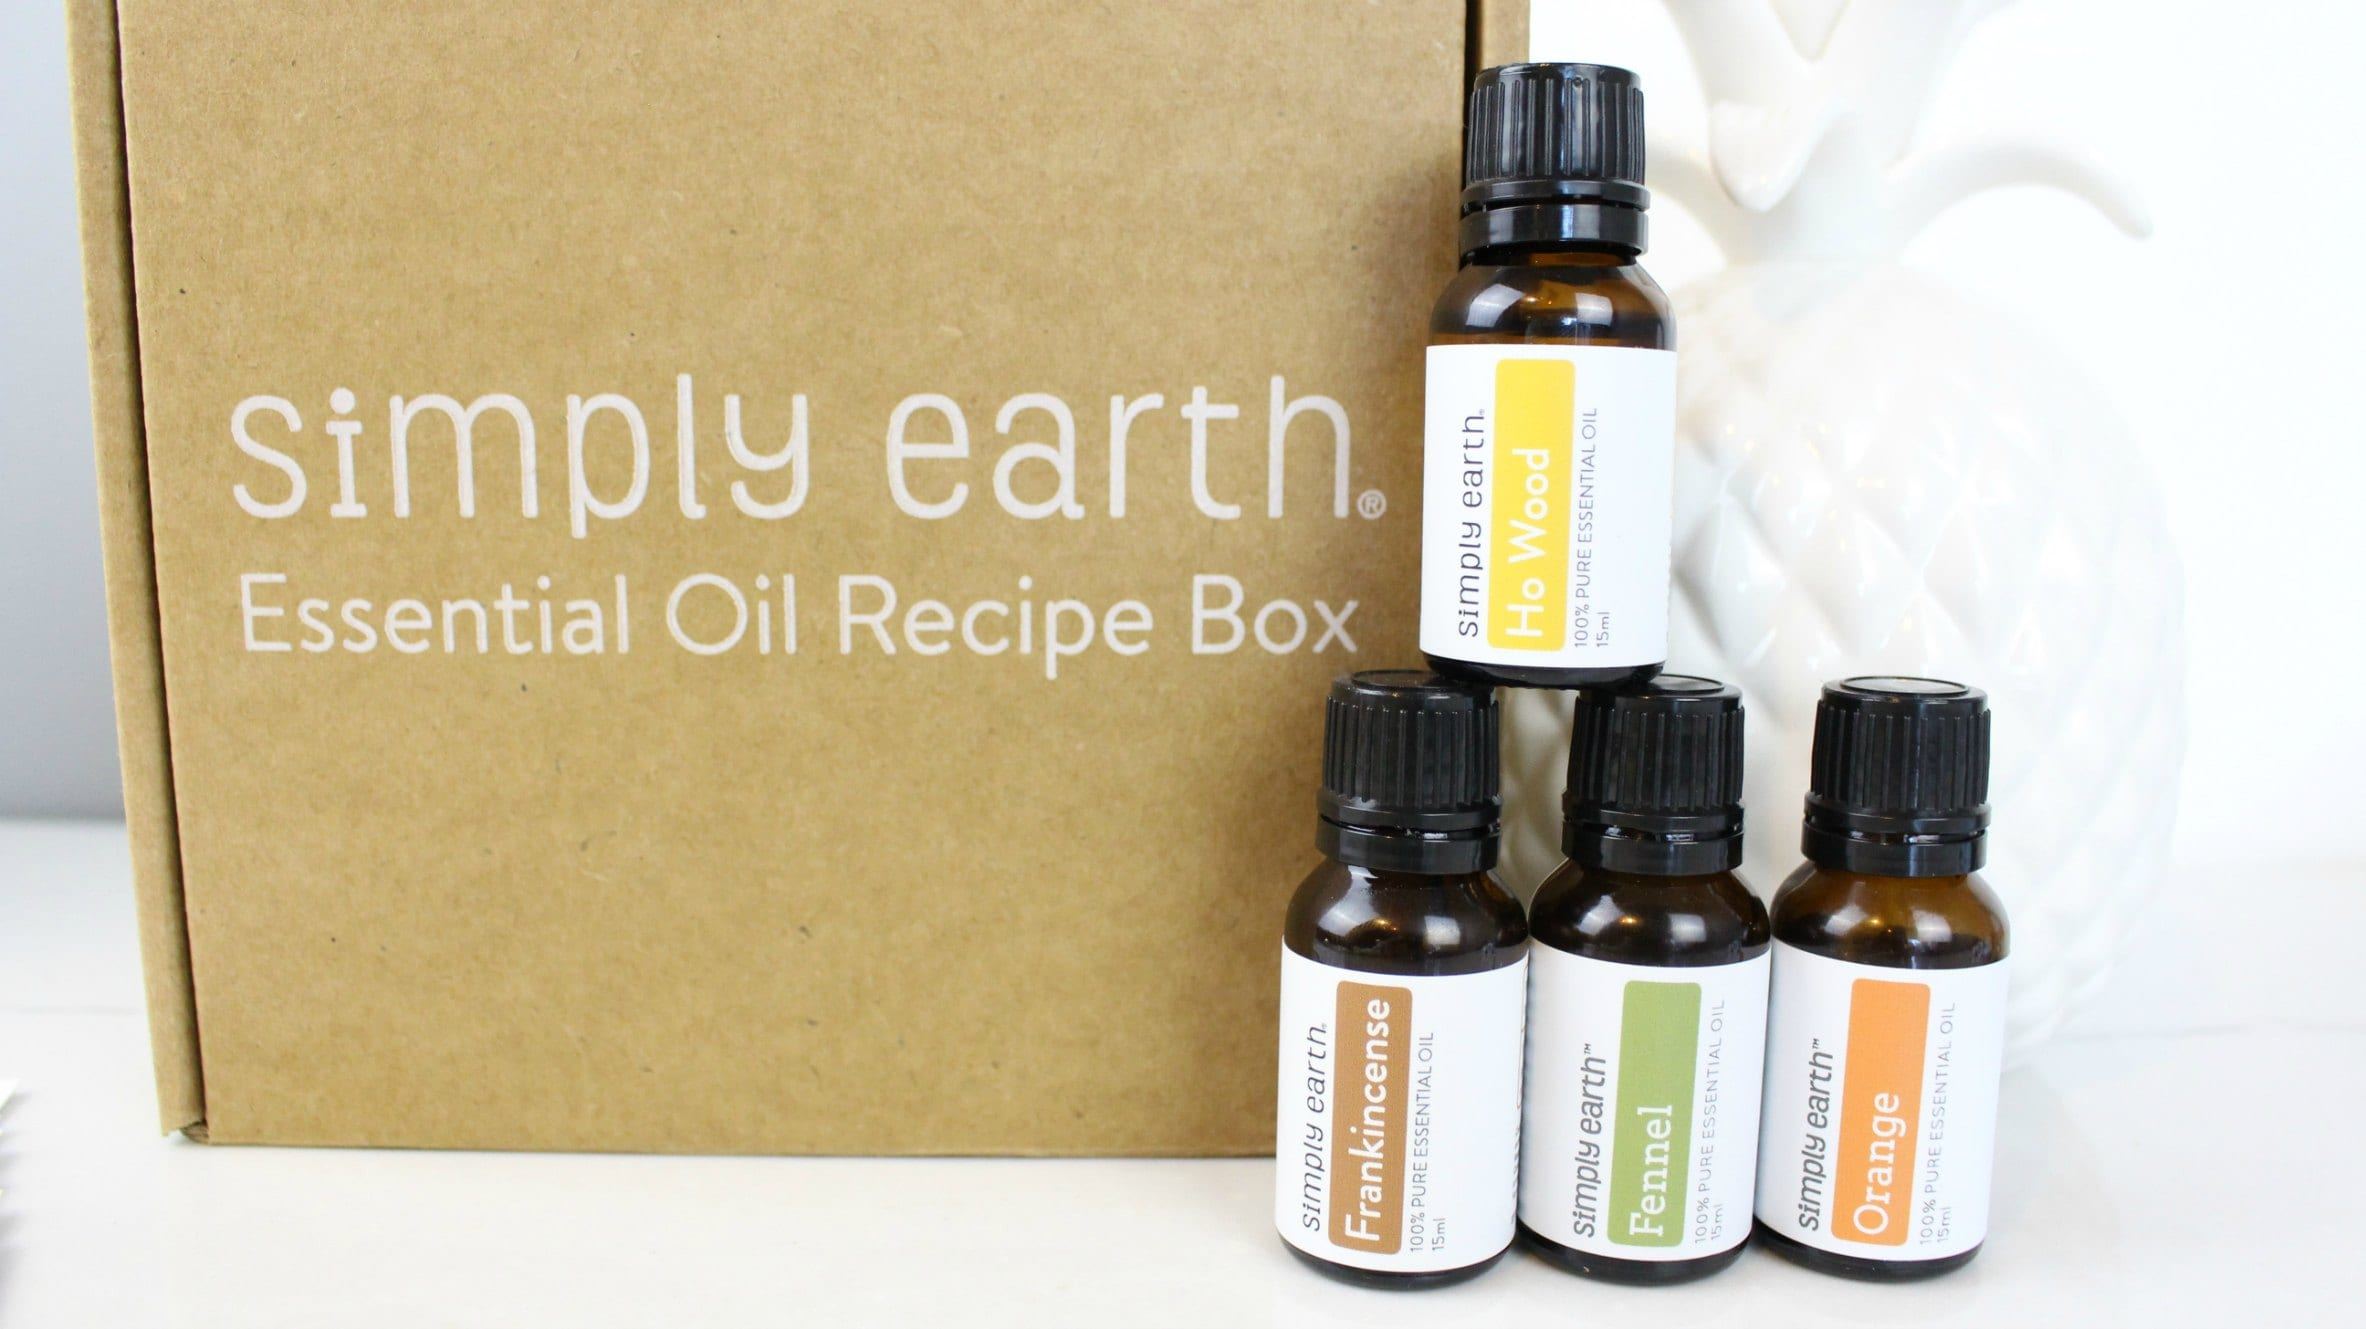 The Simply Earth Essential Oil Recipe Subscription box includes 4 essential oils and 6 recipe cards based on a monthly theme.